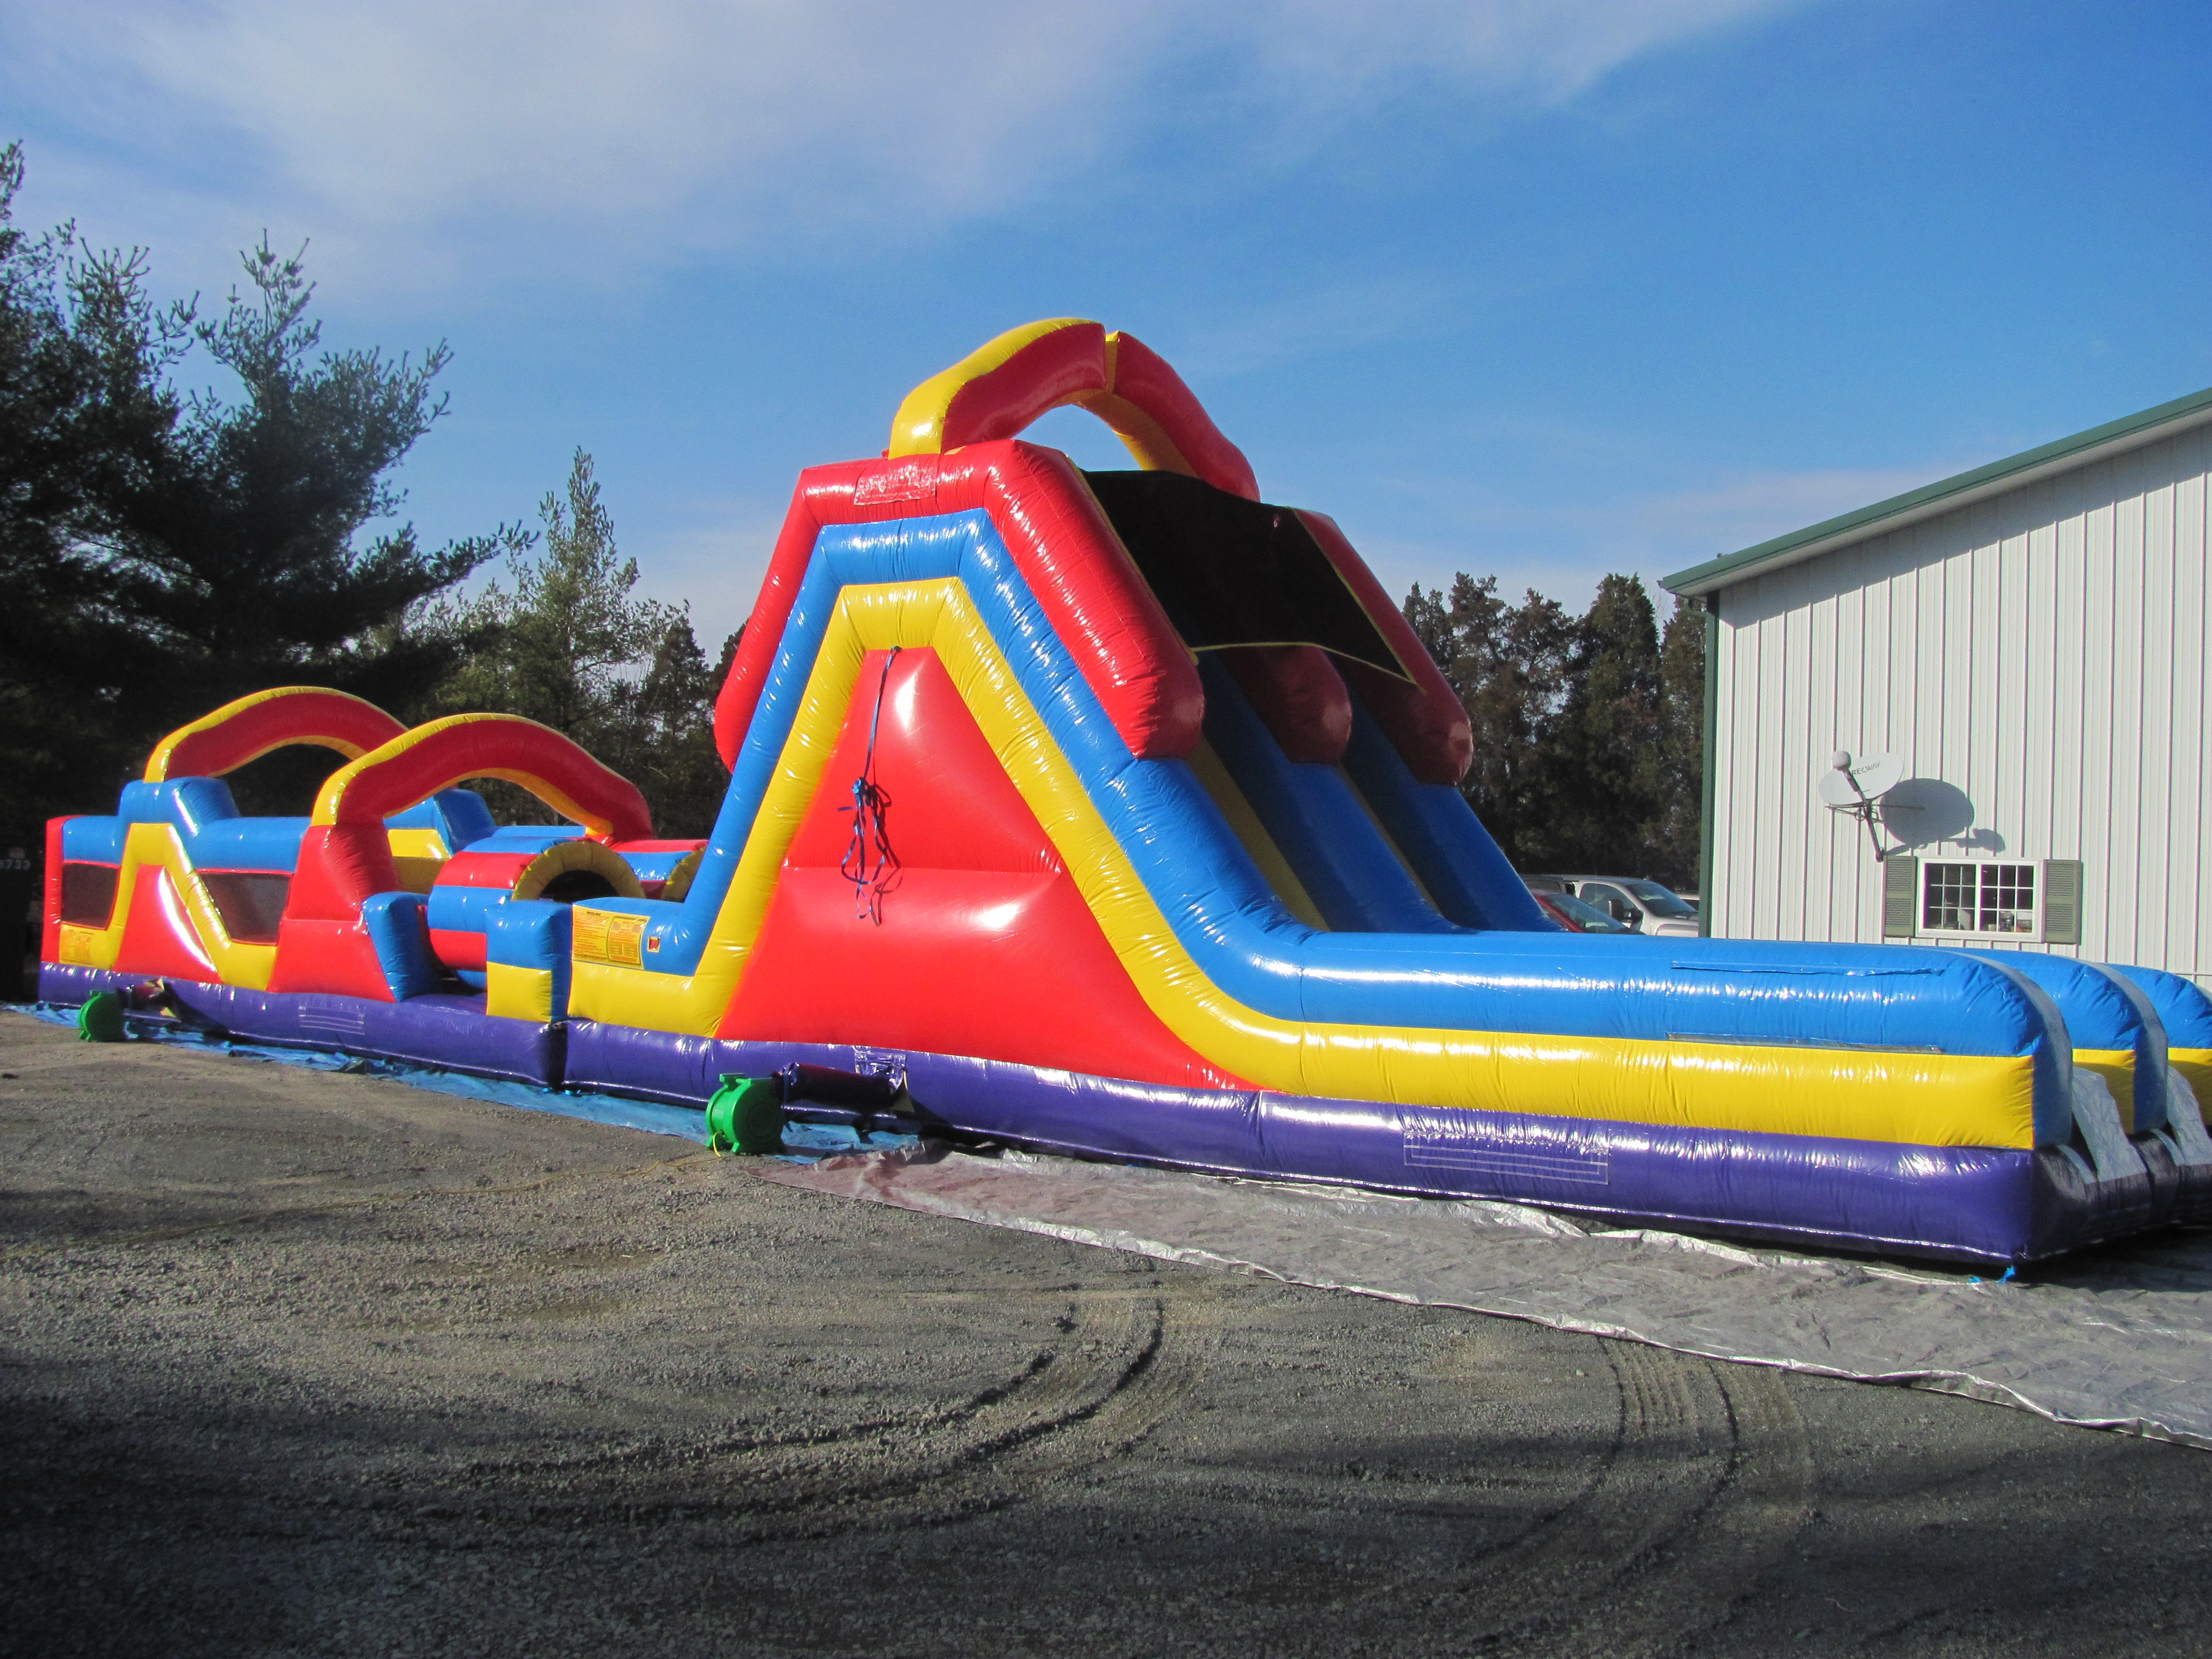 The Monster Obstacle Course inflatable play structure features pop-ups, climbs and slides. (70' l x 12' wx 18' h)